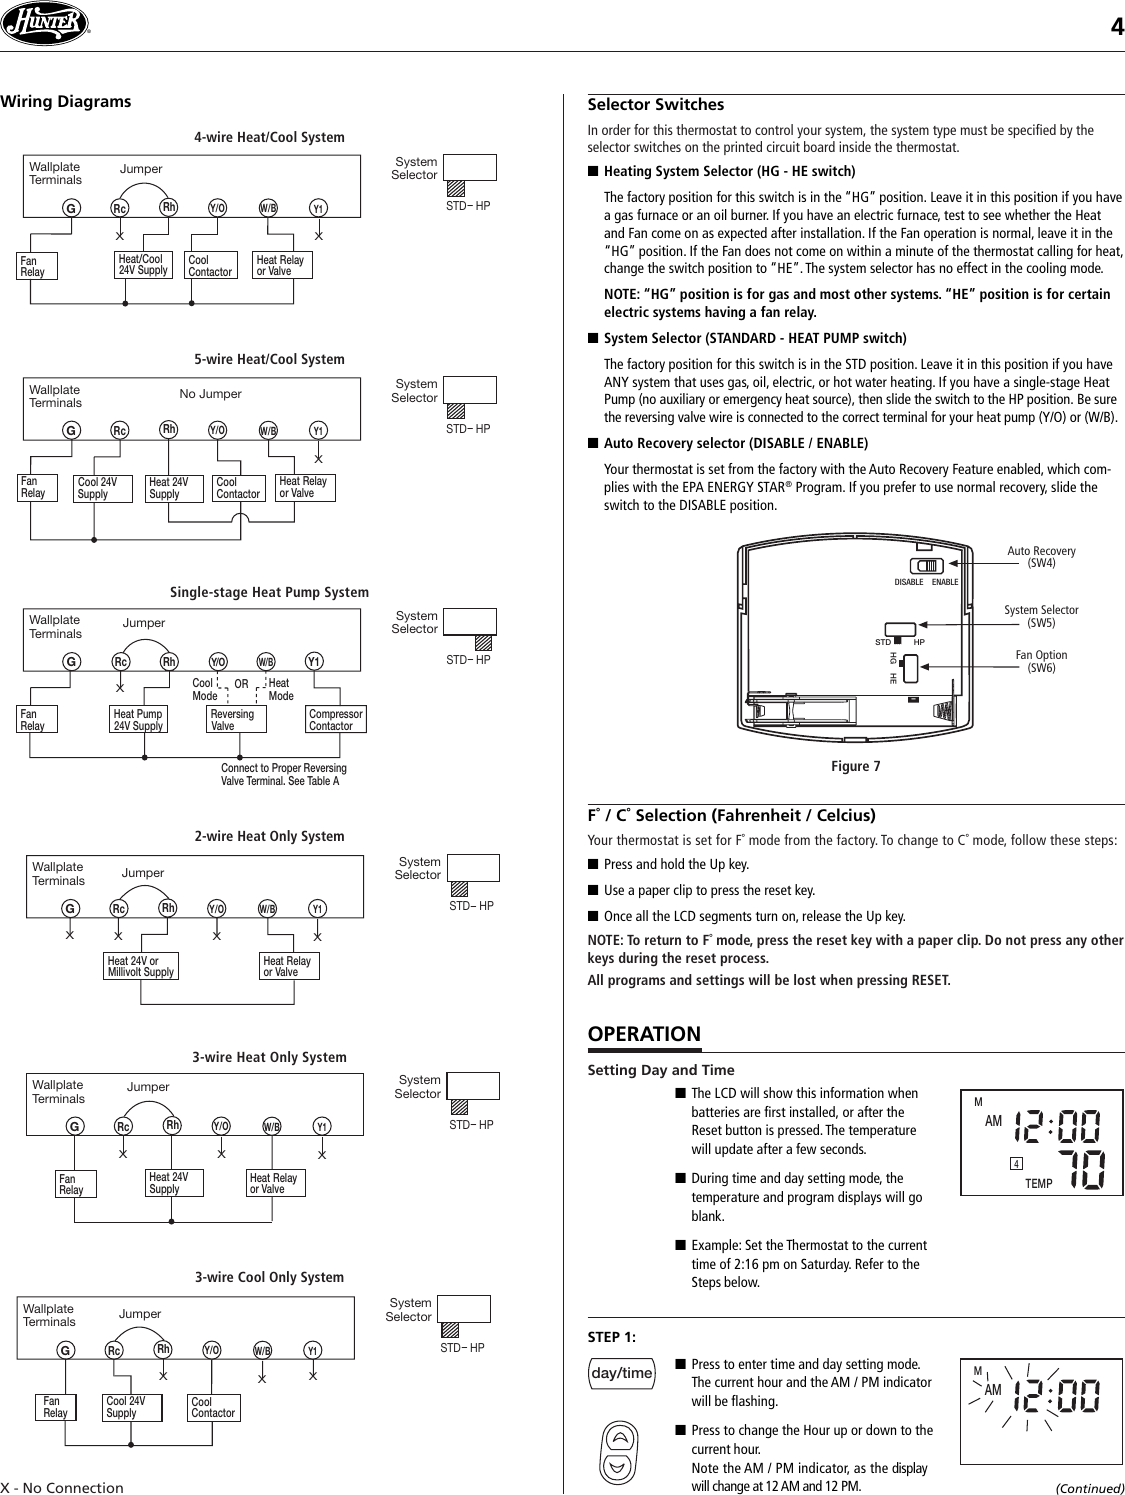 hight resolution of hunter fan 44260 users manual 41640 44260 web pmd coleman thermostat wiring diagram hunter thermostat 44260 wiring diagram 2wire